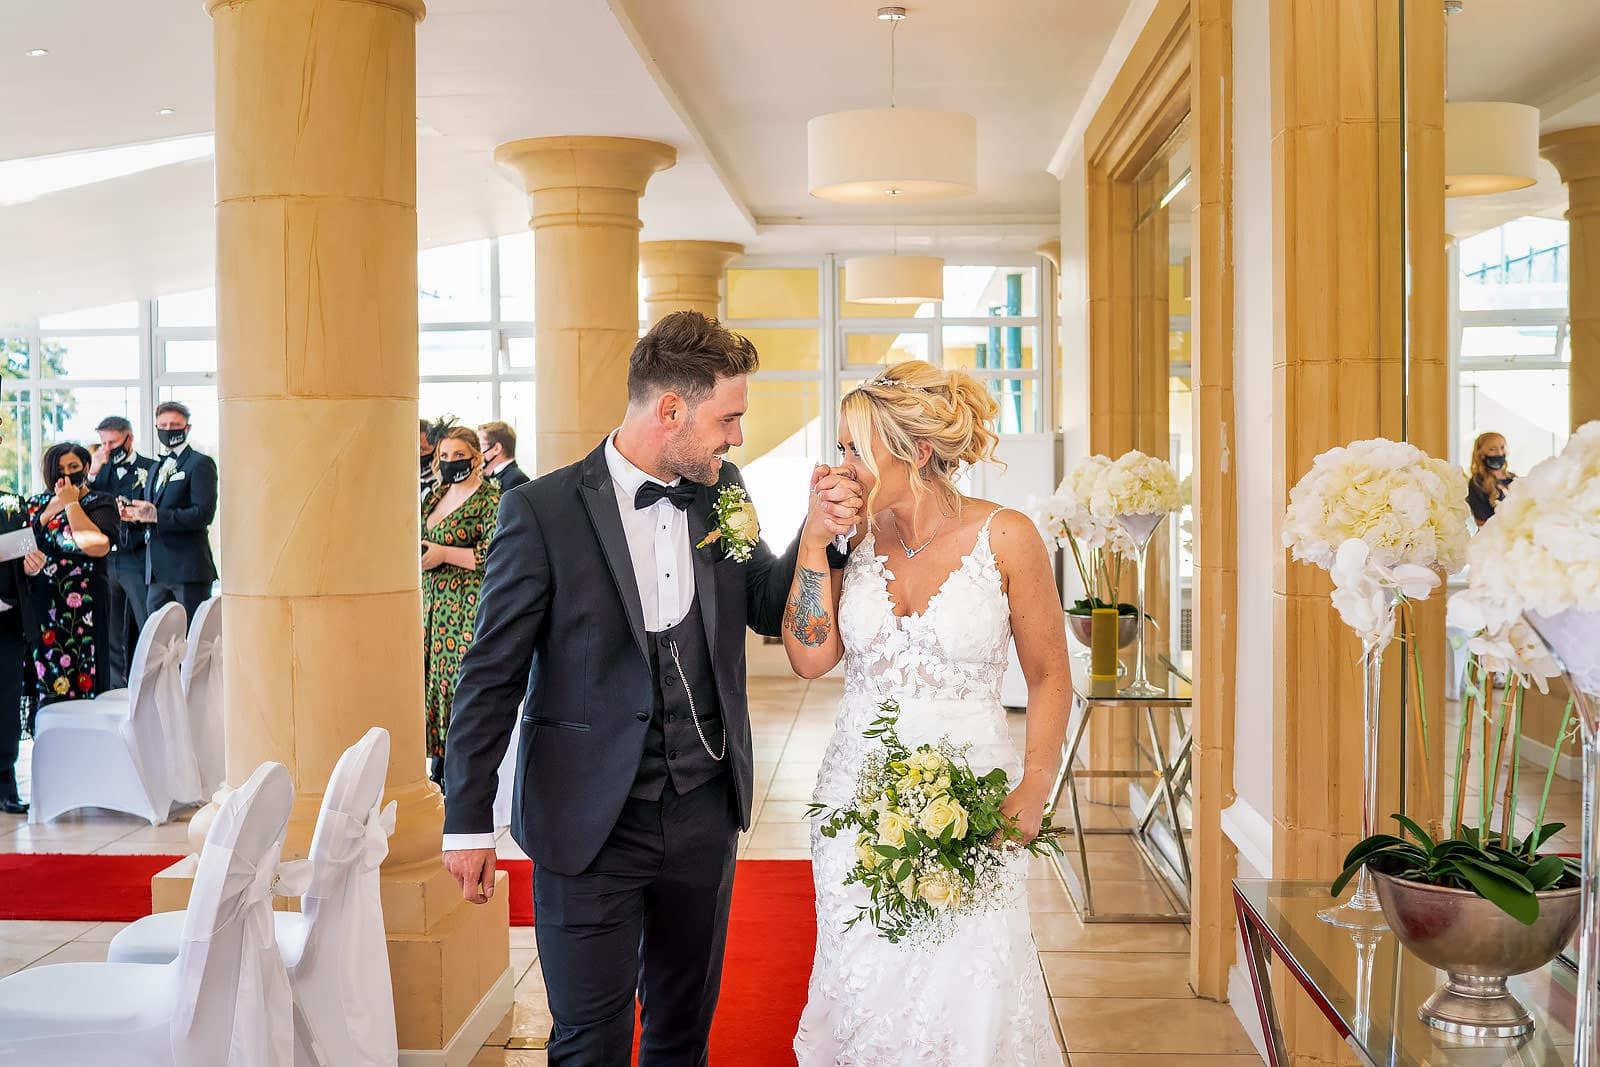 Bride and groom share a lovely moment together